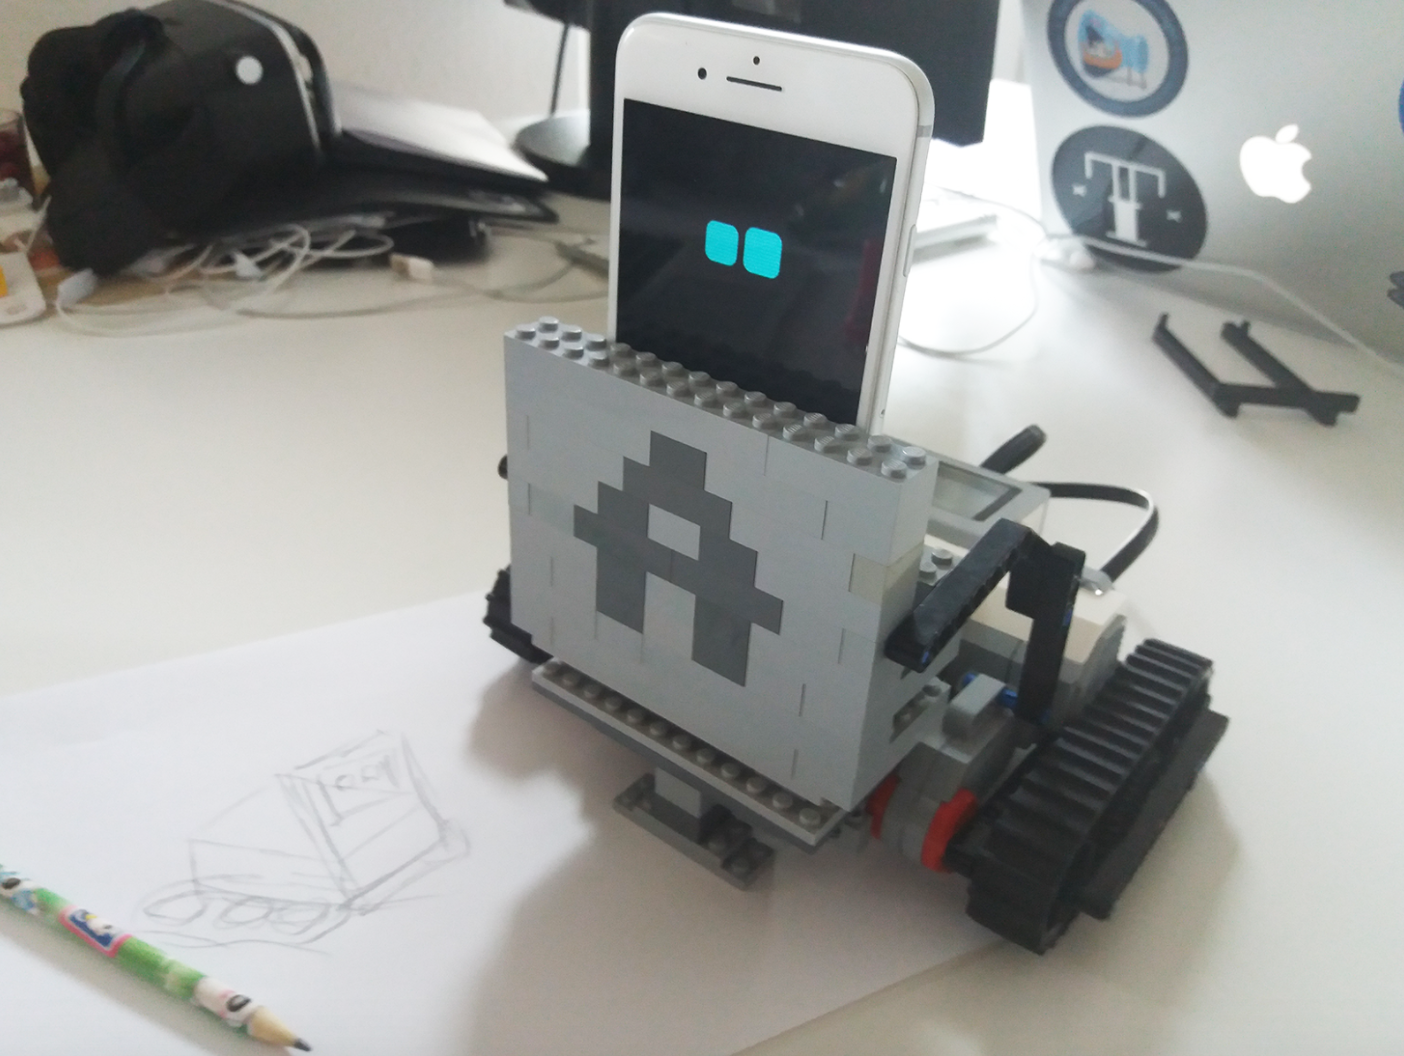 SDK on the Spot: Emotion-Aware LEGO Mindstorms Robot